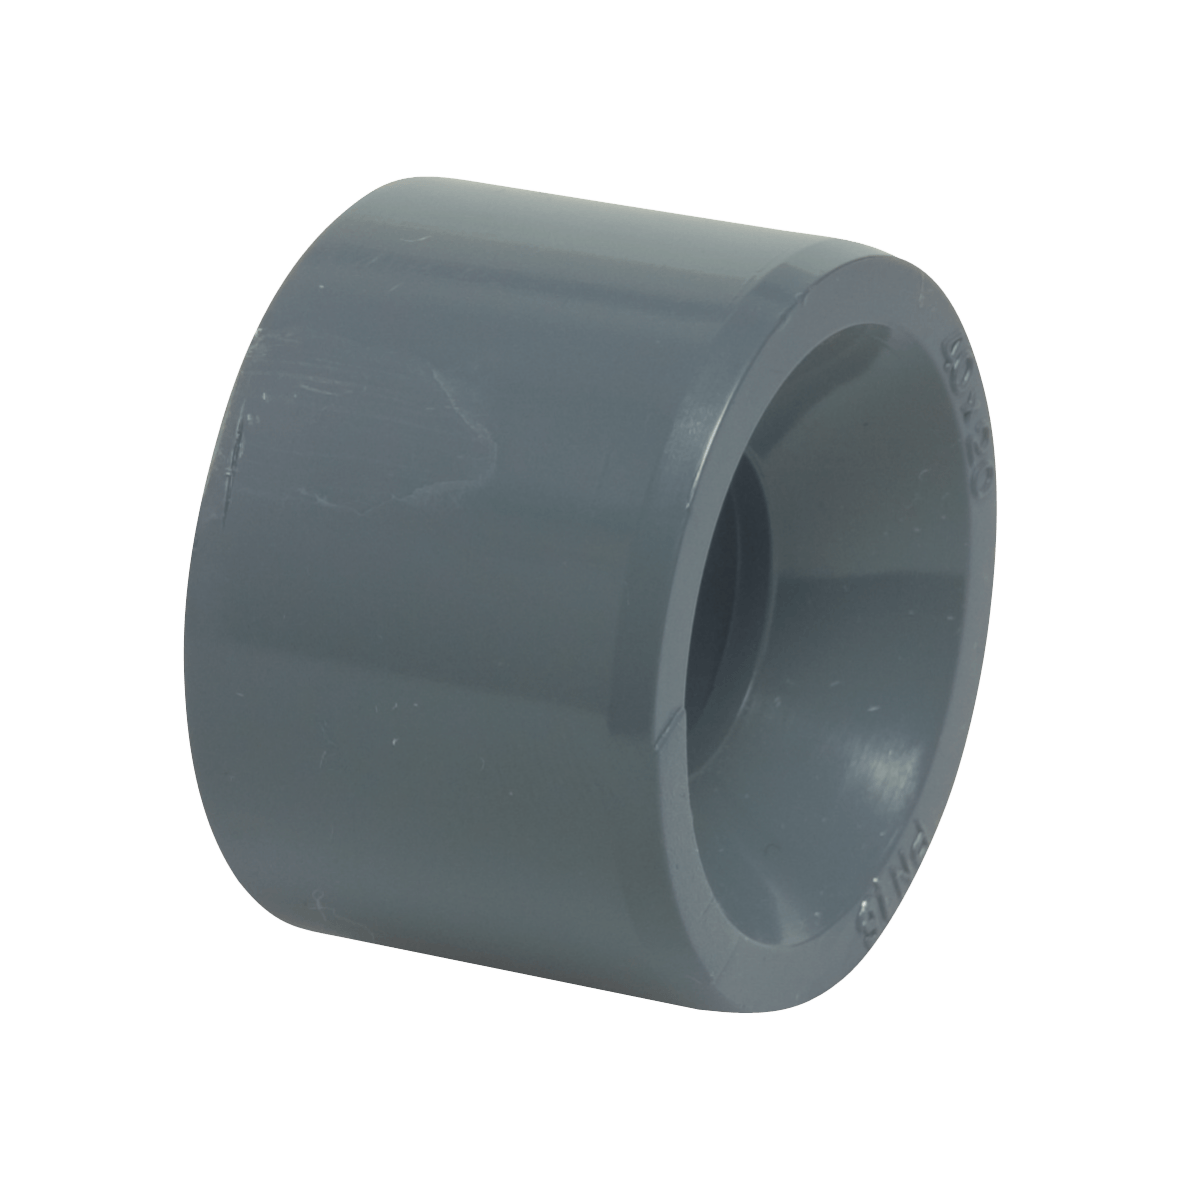 PVC reducer bushing - 63 mm x 6/4